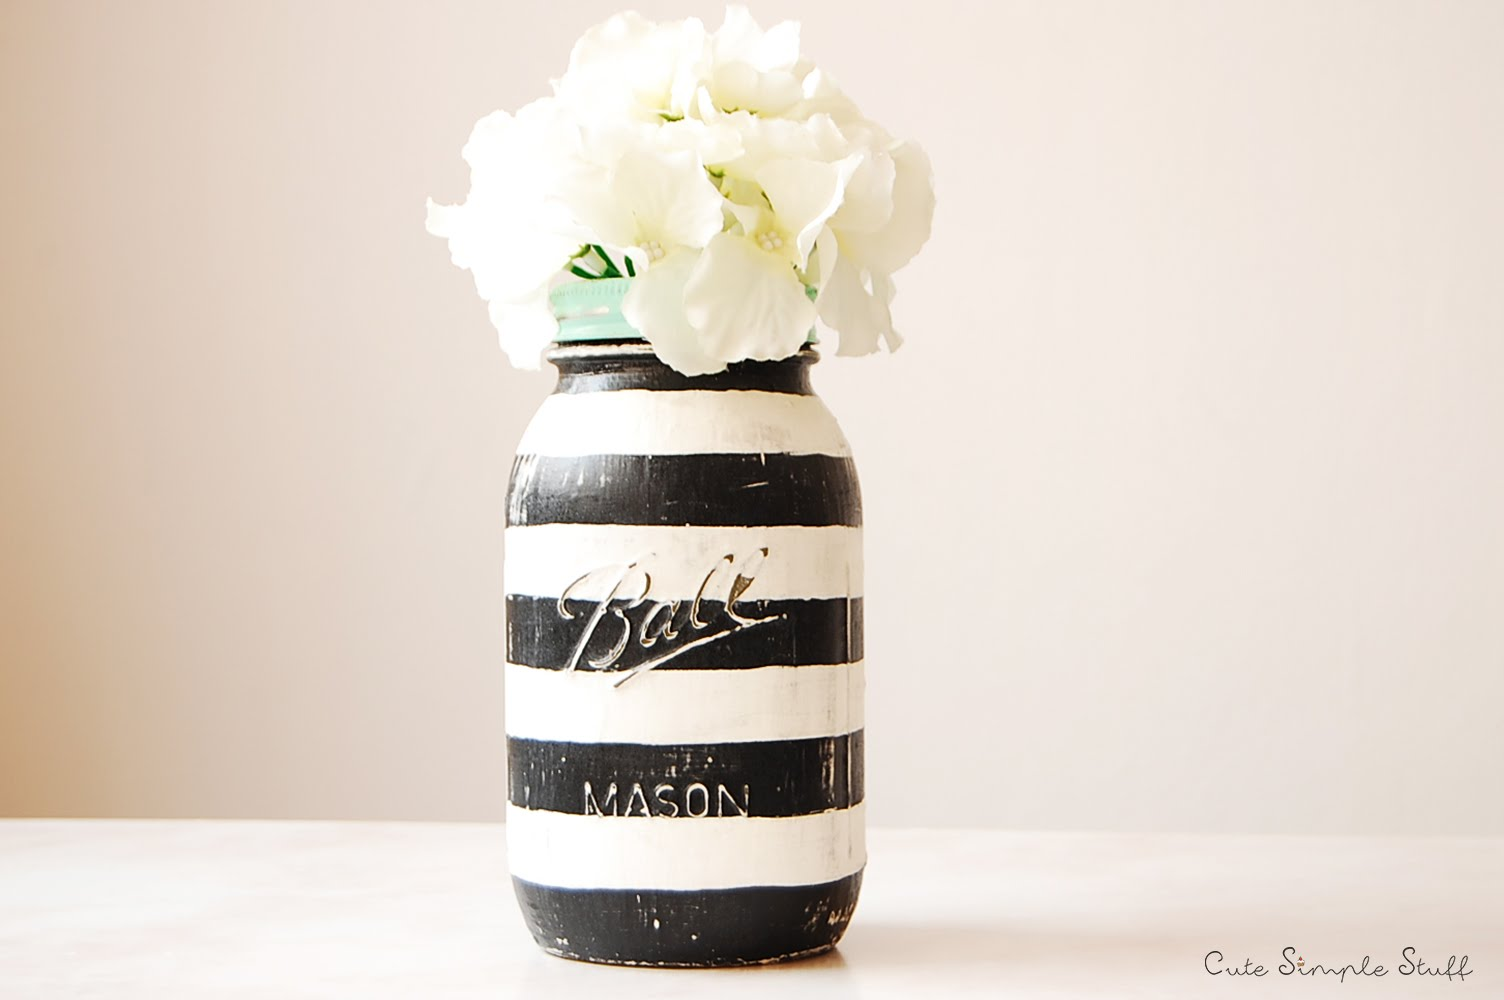 DIY Mason Jar Vases - Artsy Striped Mason Jar is The Bomb! Easy! - Best Vase Projects and Ideas for Mason Jars - Painted, Wedding, Hanging Flowers, Centerpiece, Rustic Burlap, Ribbon and Twine